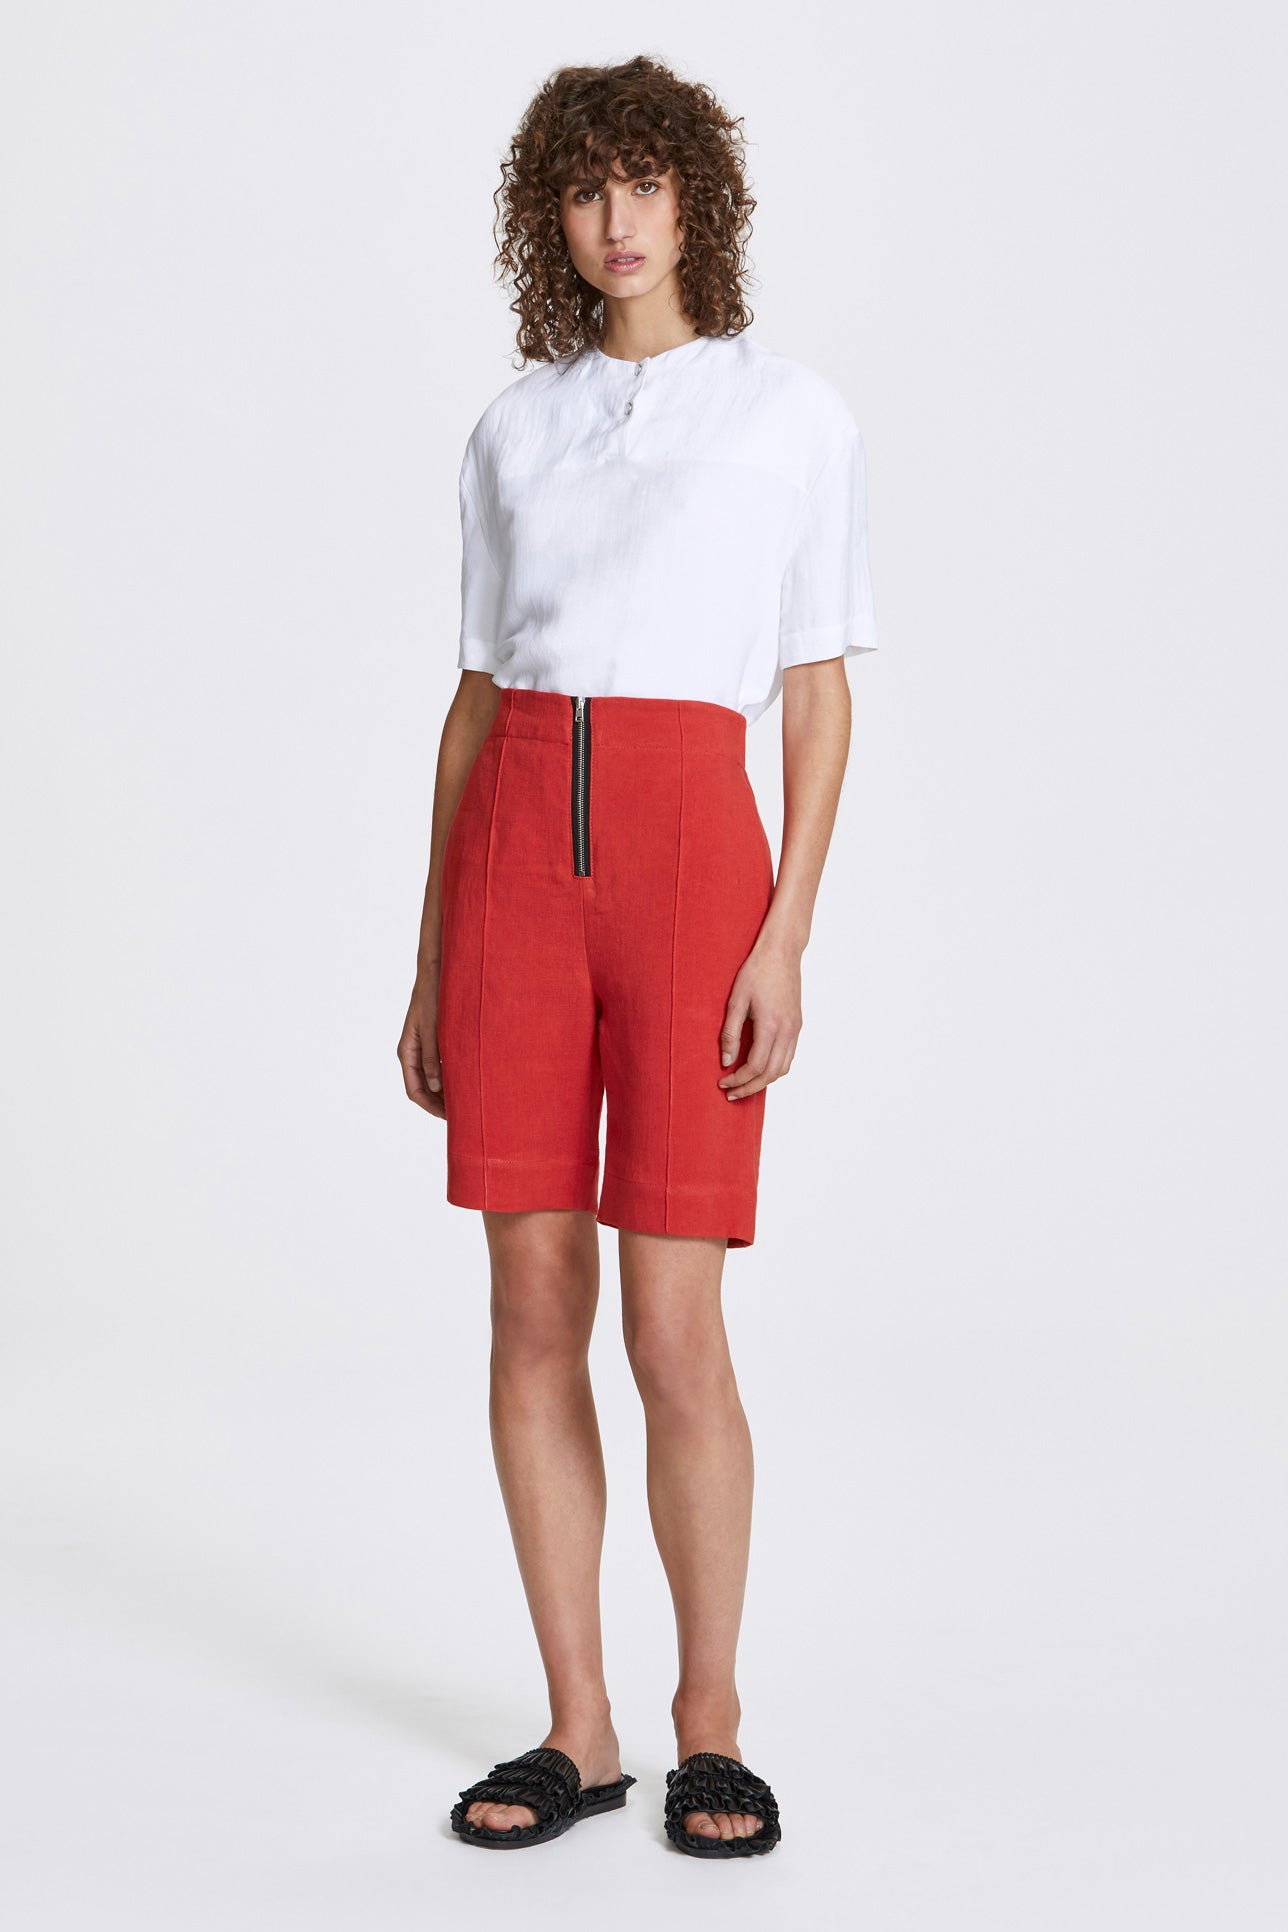 Exposed wide leg shorts - Heavy linen - Lava red - Resortwear shorts - Her Line